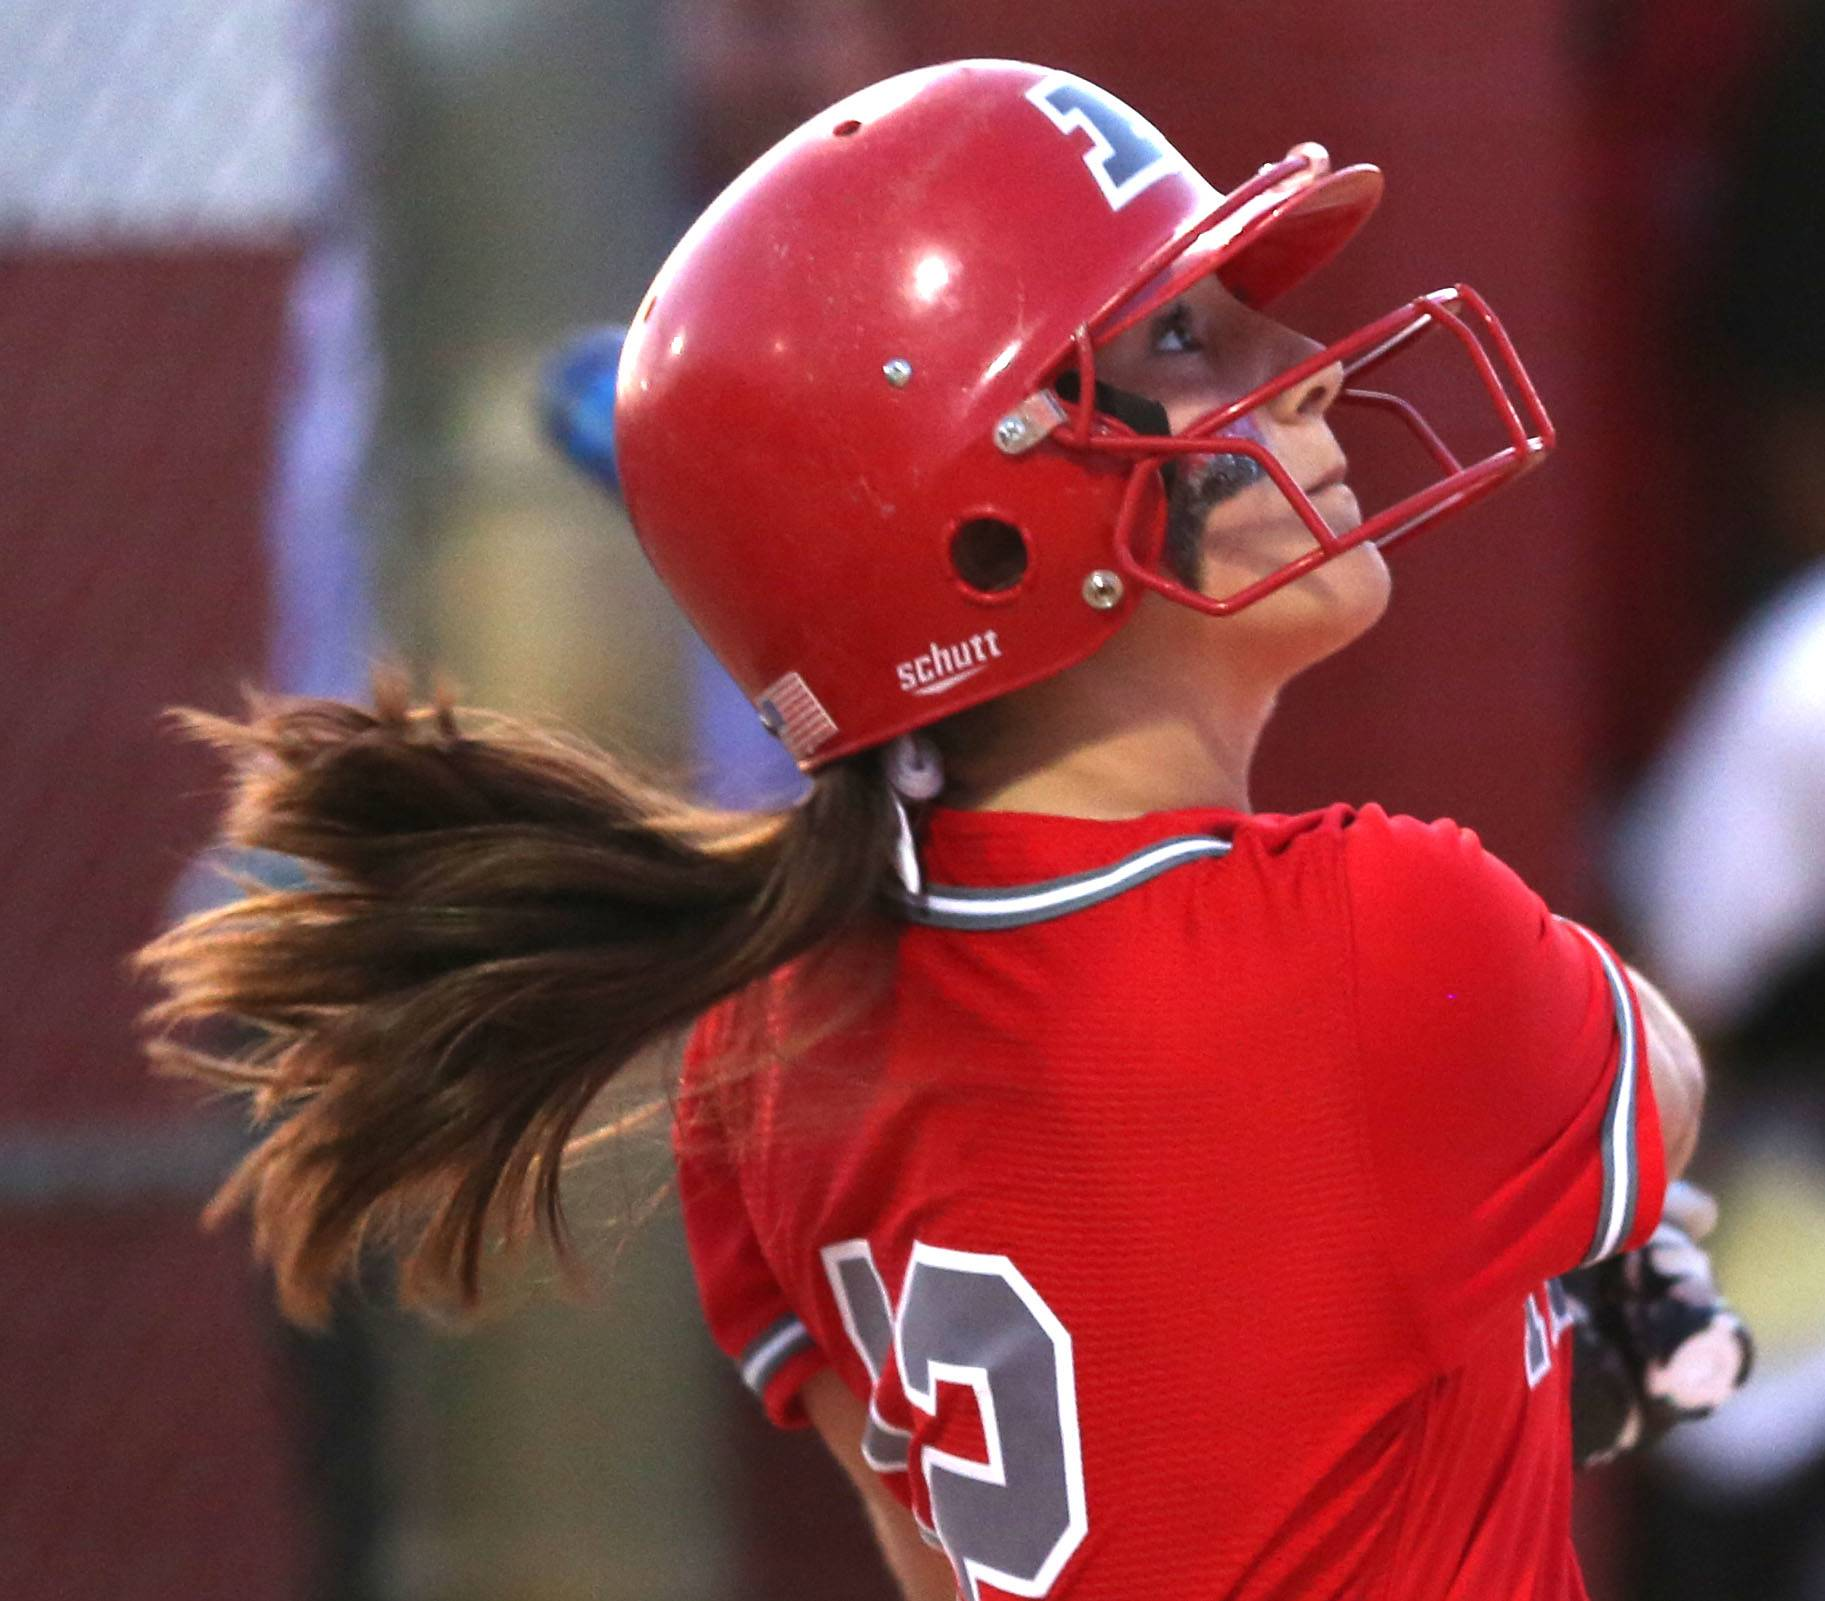 Palatine's Kaitlyn Reed watches the flight of her 3-run homer during Class 4A supersectional softball action at Barrington on Monday night.